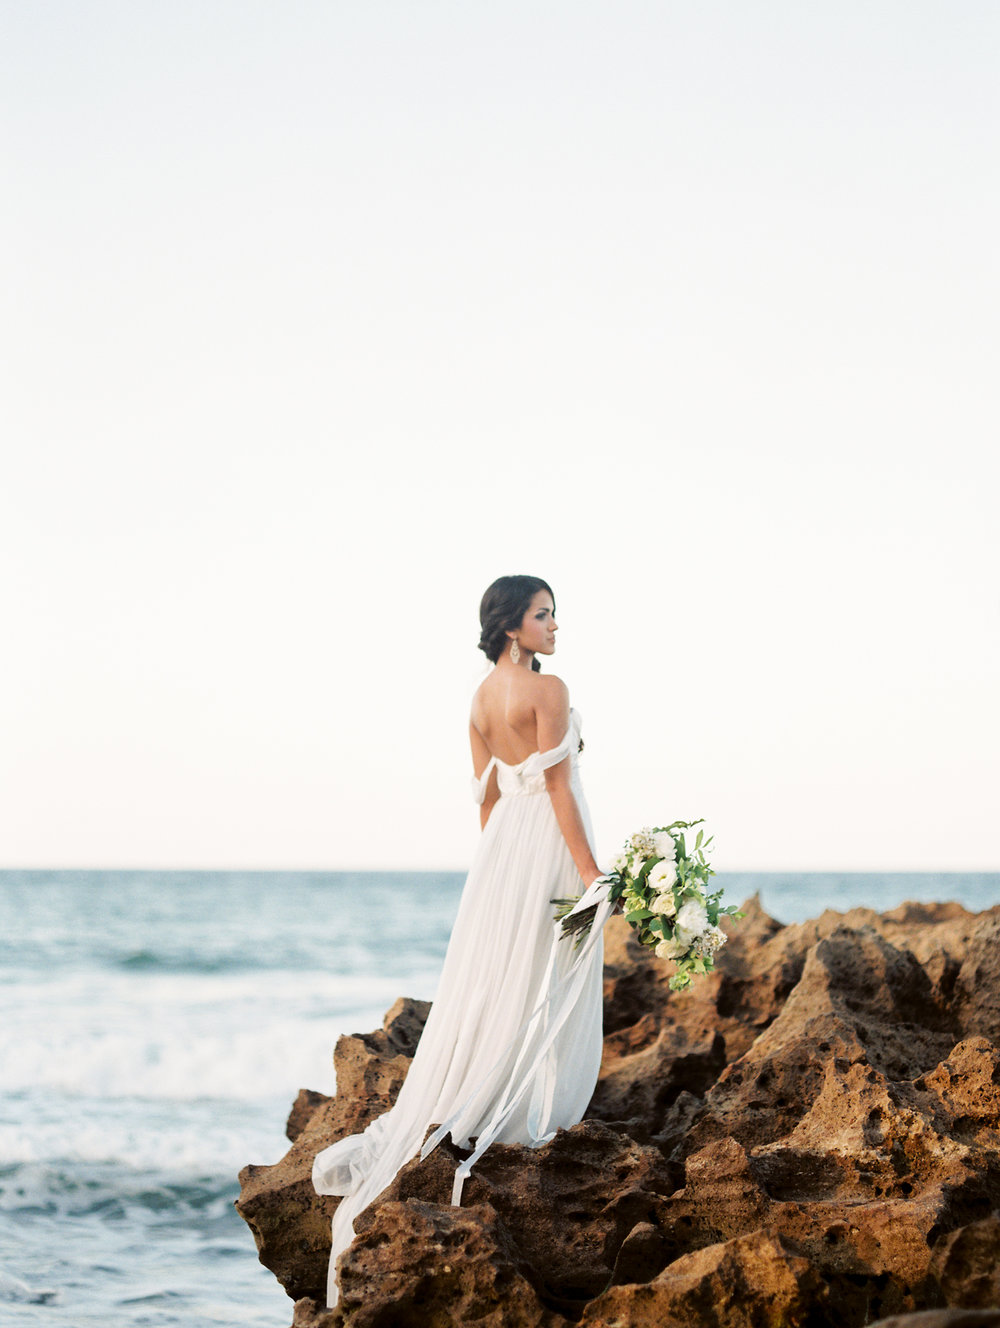 coral cove, jupiter beach FL, palm beach wedding photos, bridal portraits